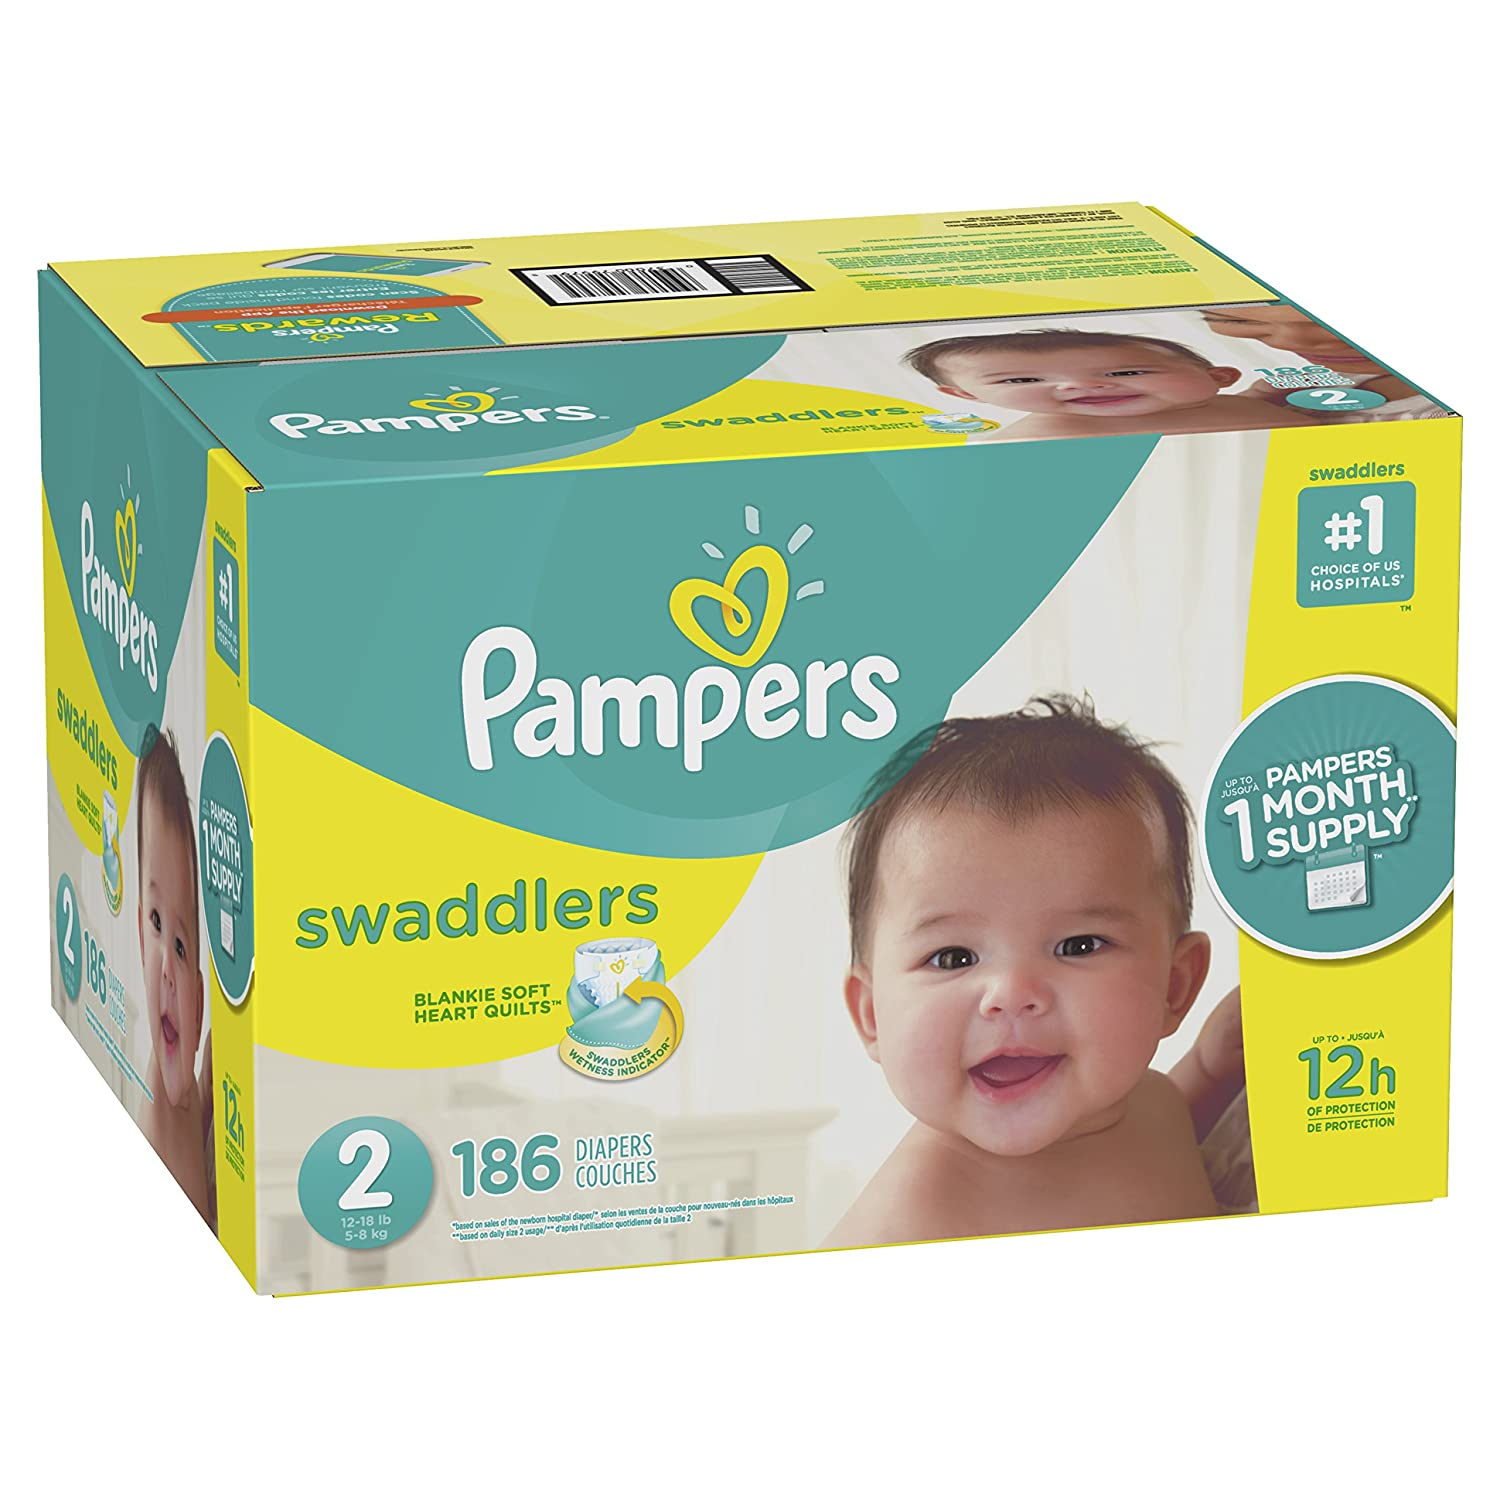 Pampers Swaddlers Disposable Diapers Size 2, 186 Count 10037000799792